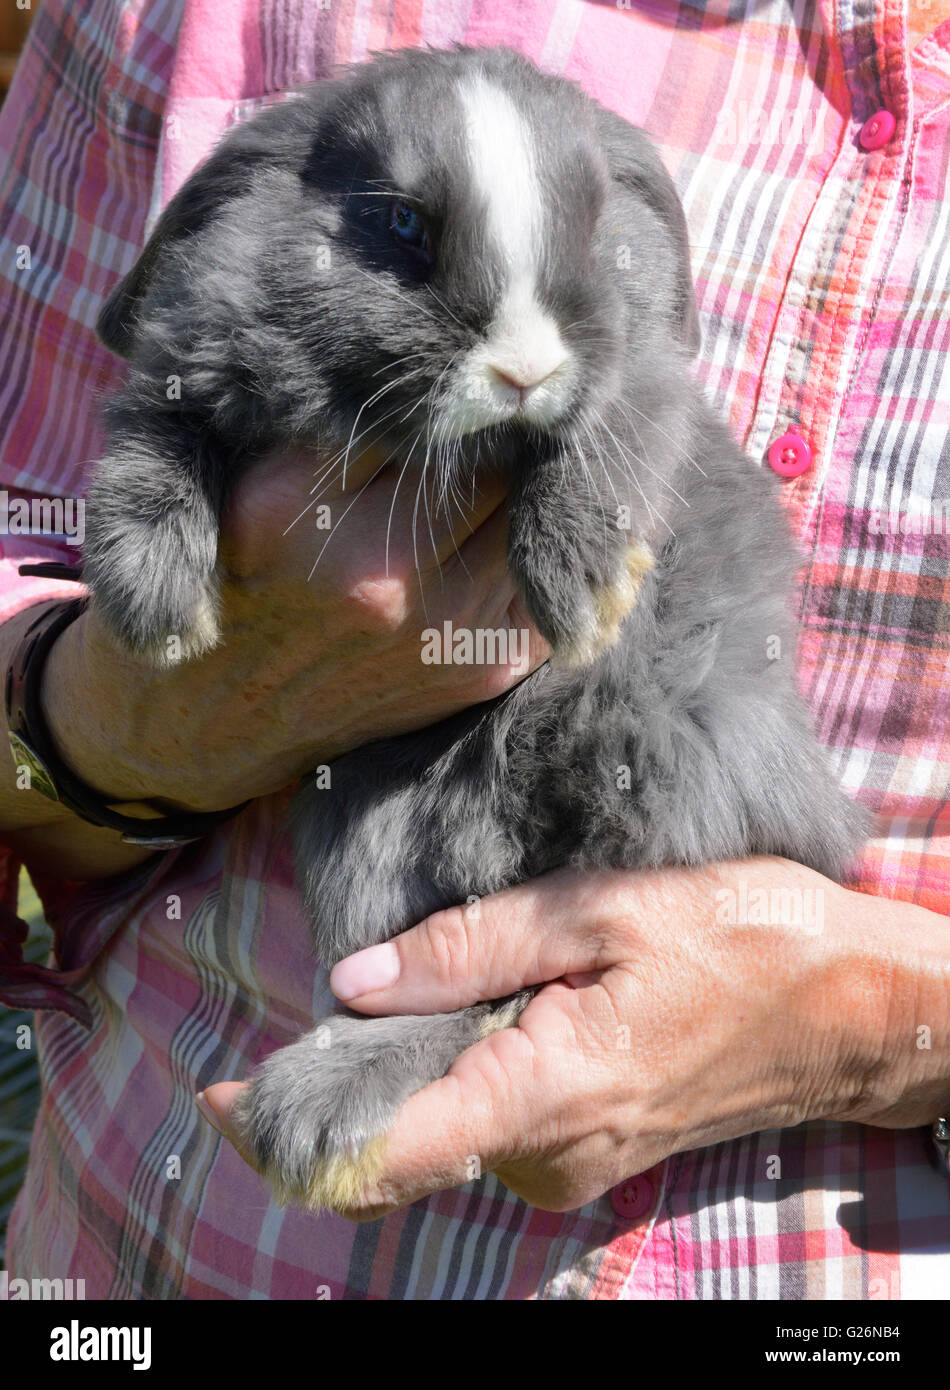 Holland Lop rabbit held in arms by farmer - Stock Image